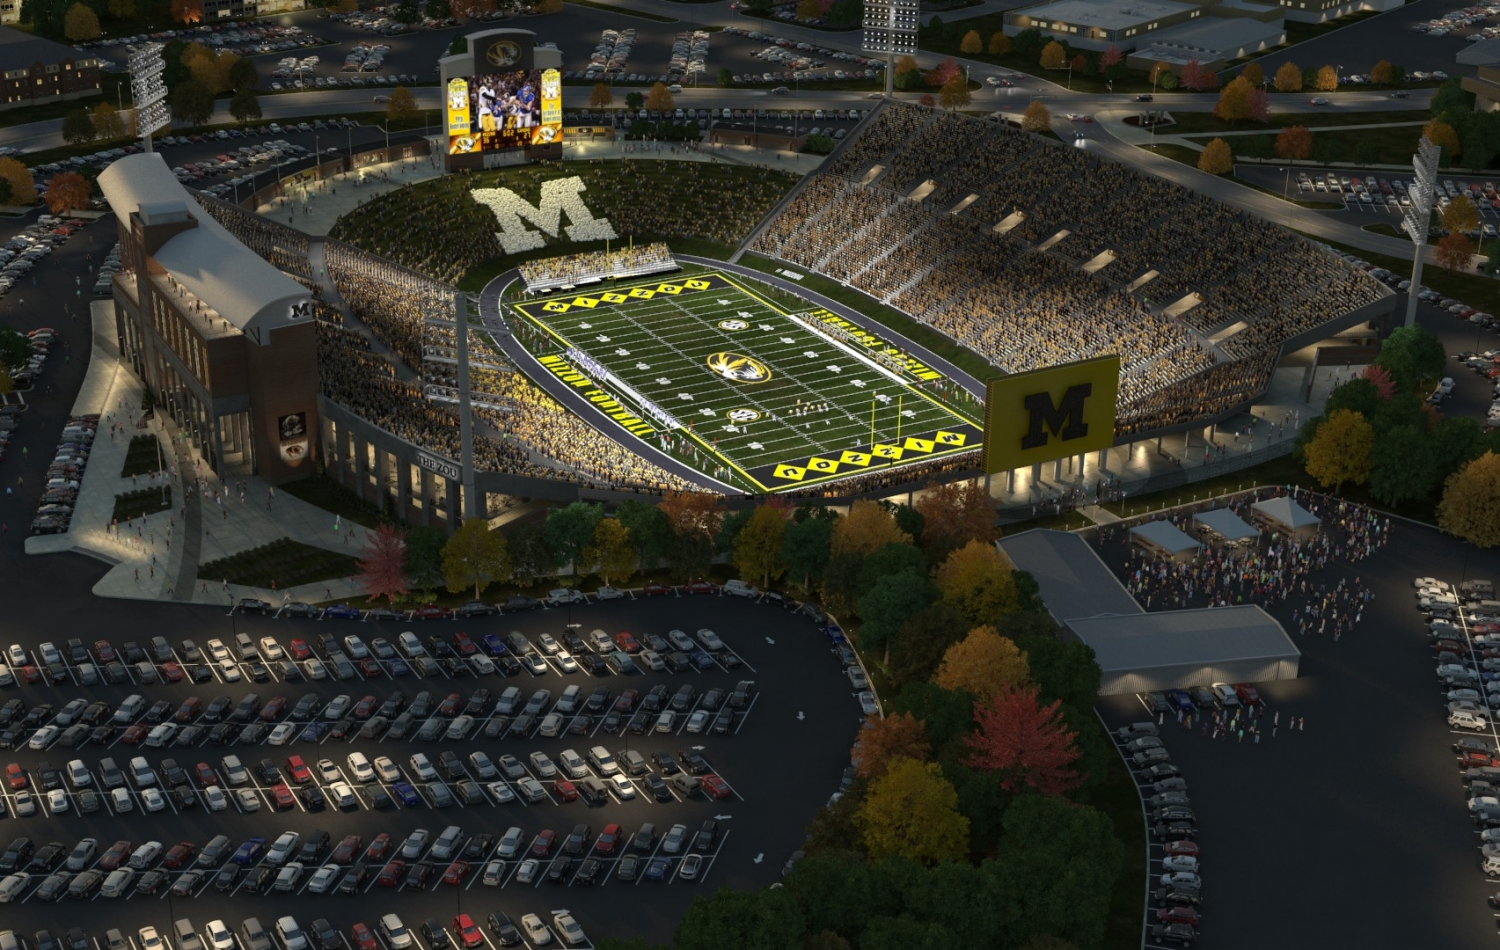 One of a set of 3D stadium renderings that show the crowds of attendees entering the stadium.